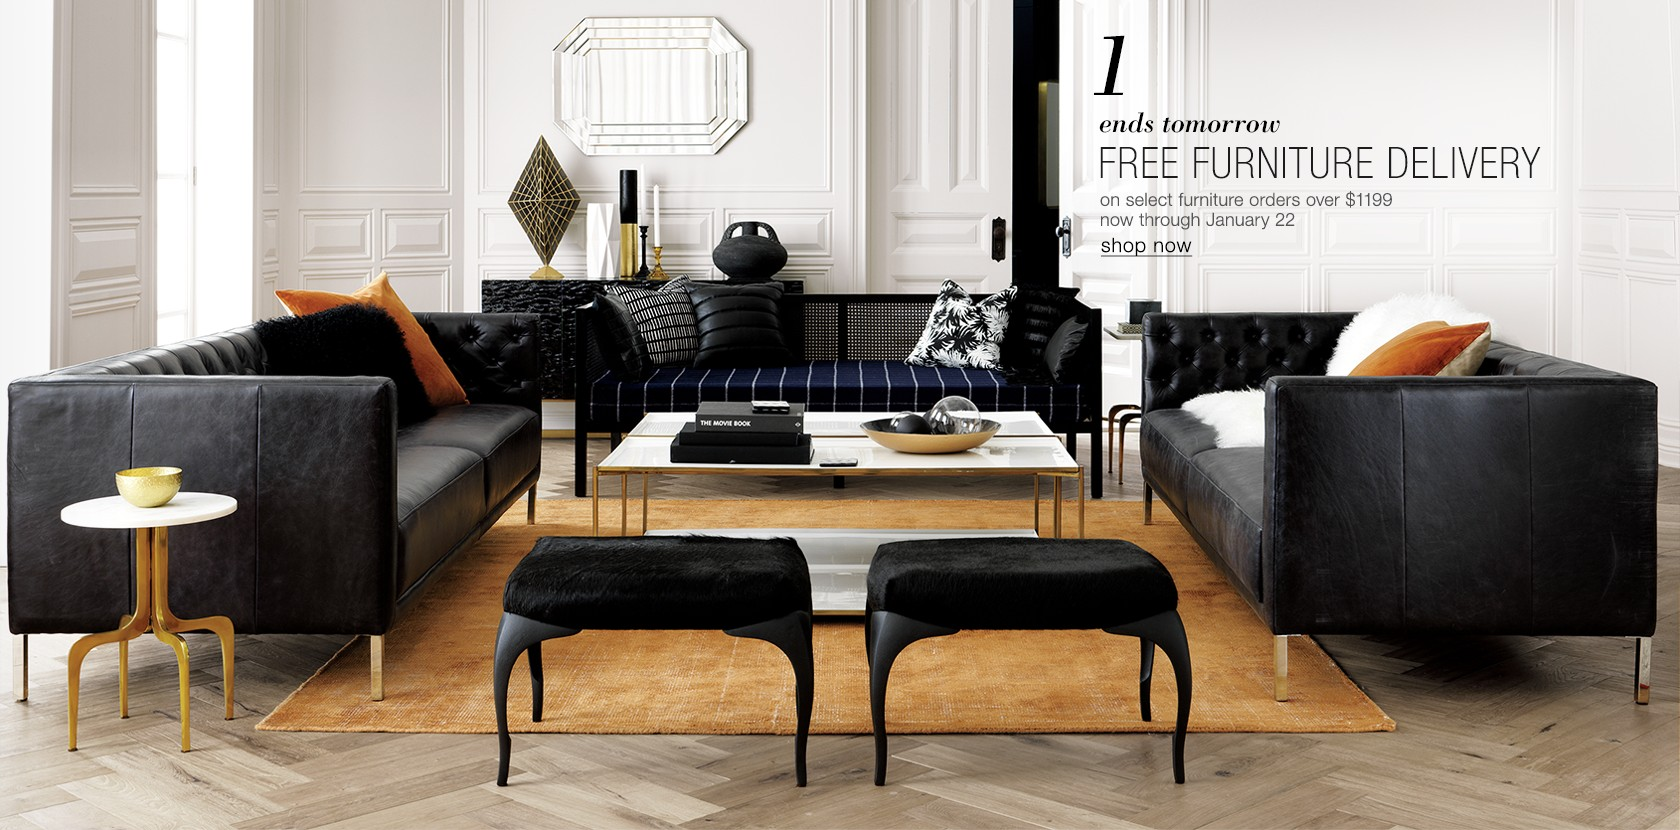 free furniture delivery on select orders $1199 or more